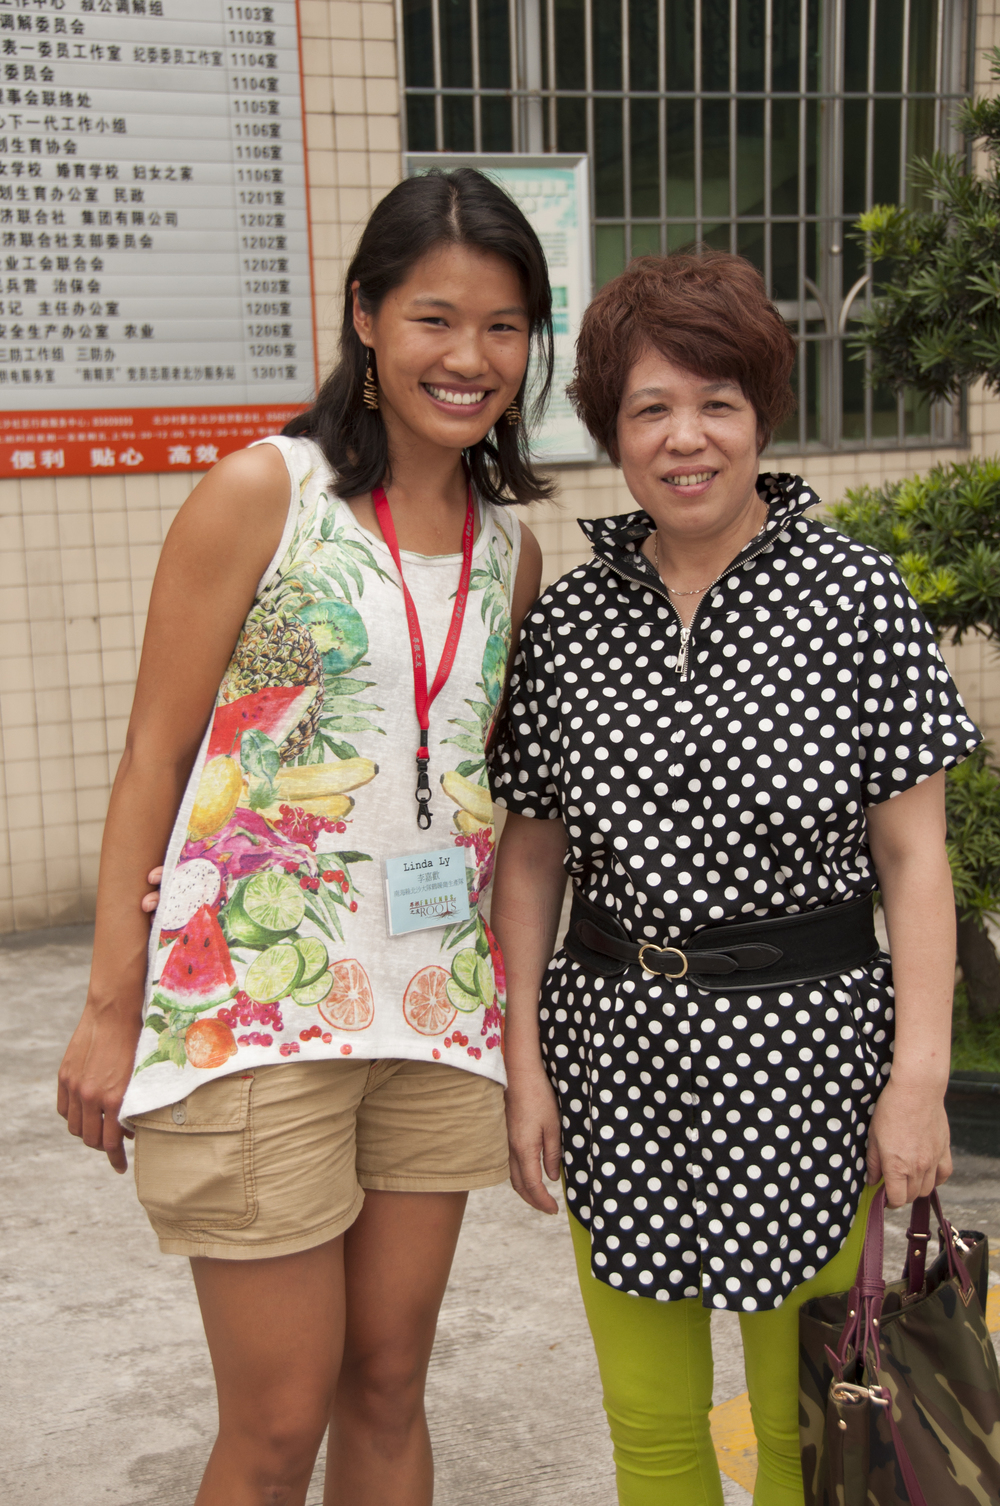 Grateful to have my aunt Ling Yi come from Hong Kong to attend my rooting.